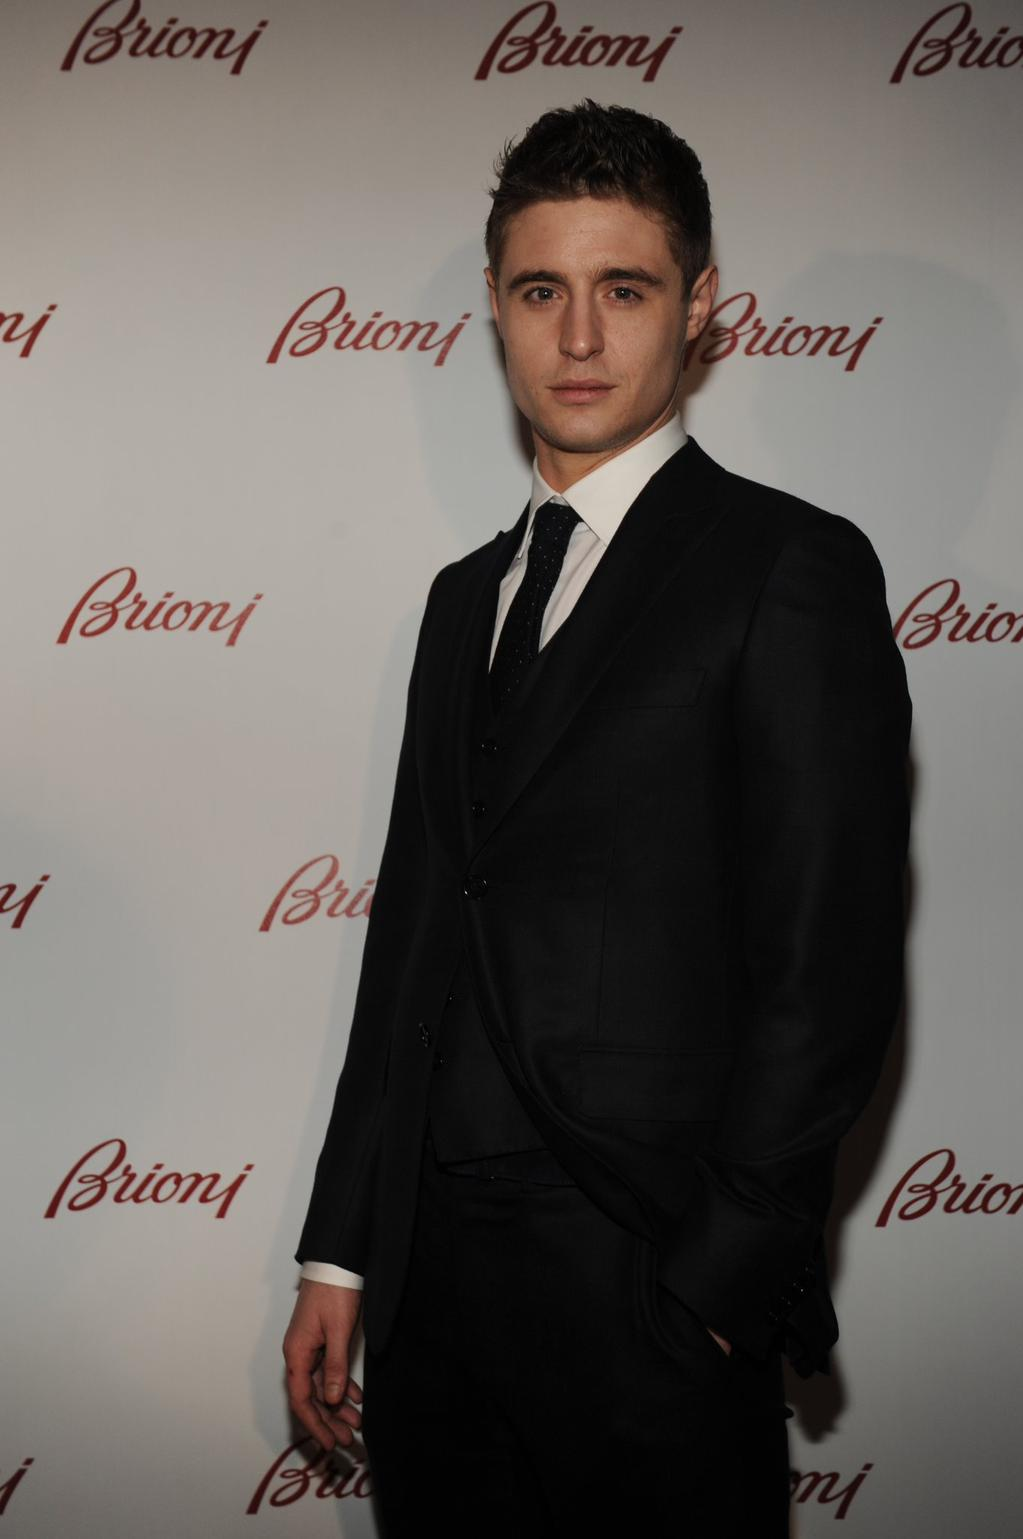 ames-marsden-max-irons-brioni-brioni-milan-menswear-fashion-week-dinner-party/